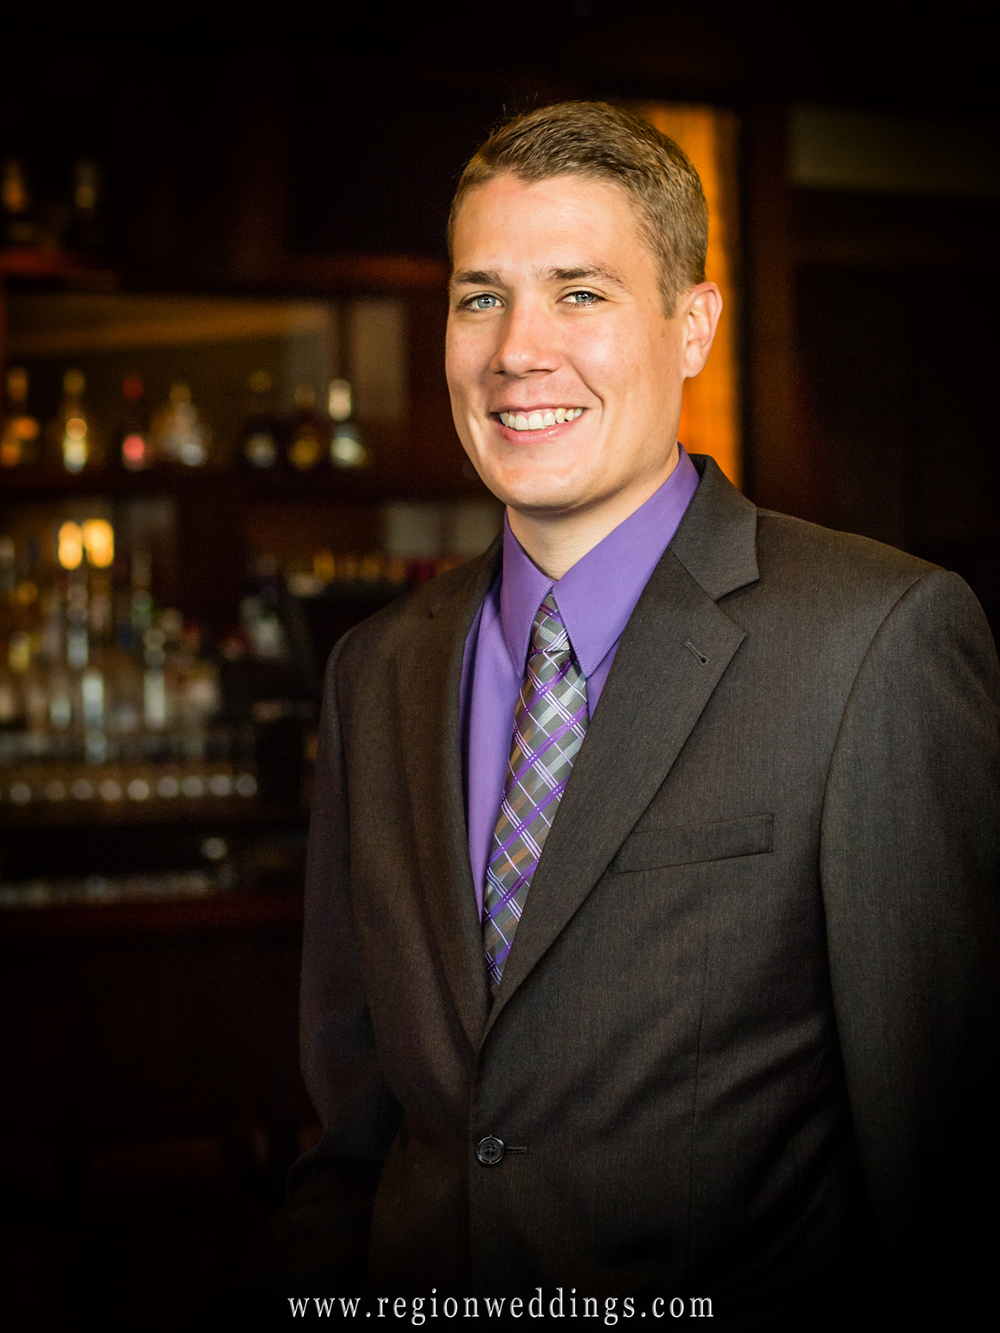 The groom poses for his wedding portrait in front of the hotel bar at Blue Chip Casino in Michigan City.